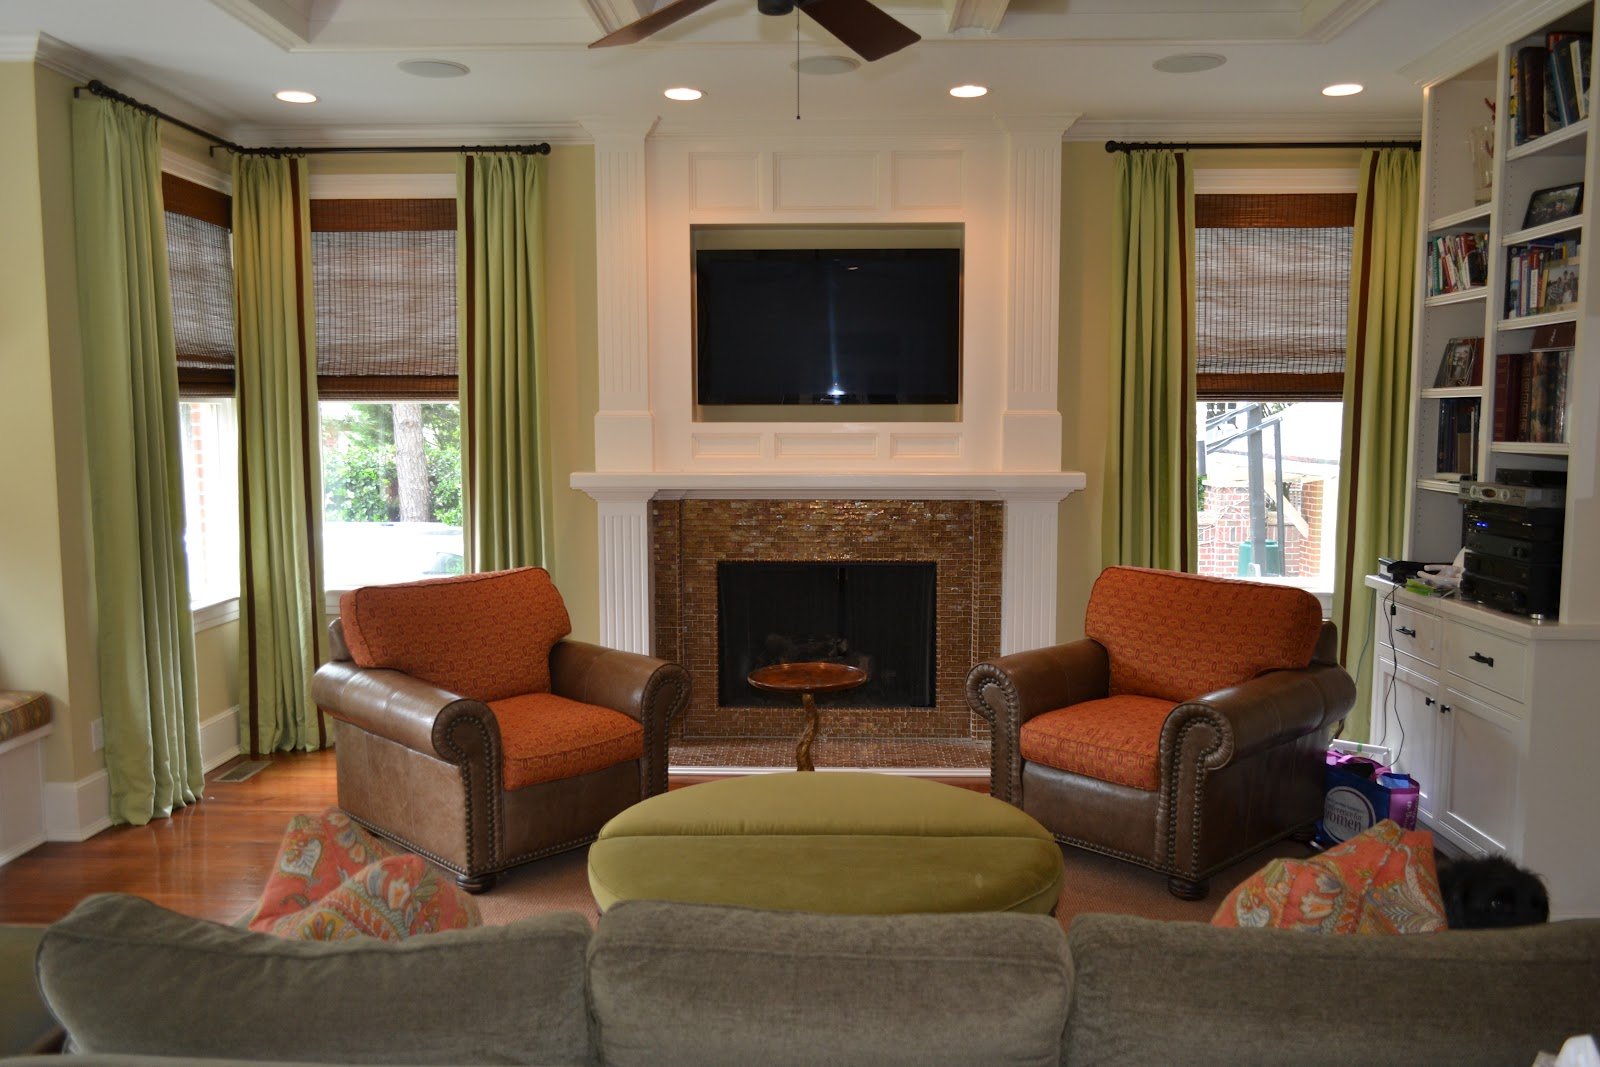 Design Window: LUCY WILLIAMS INTERIOR DESIGN BLOG: BEFORE AND AFTER